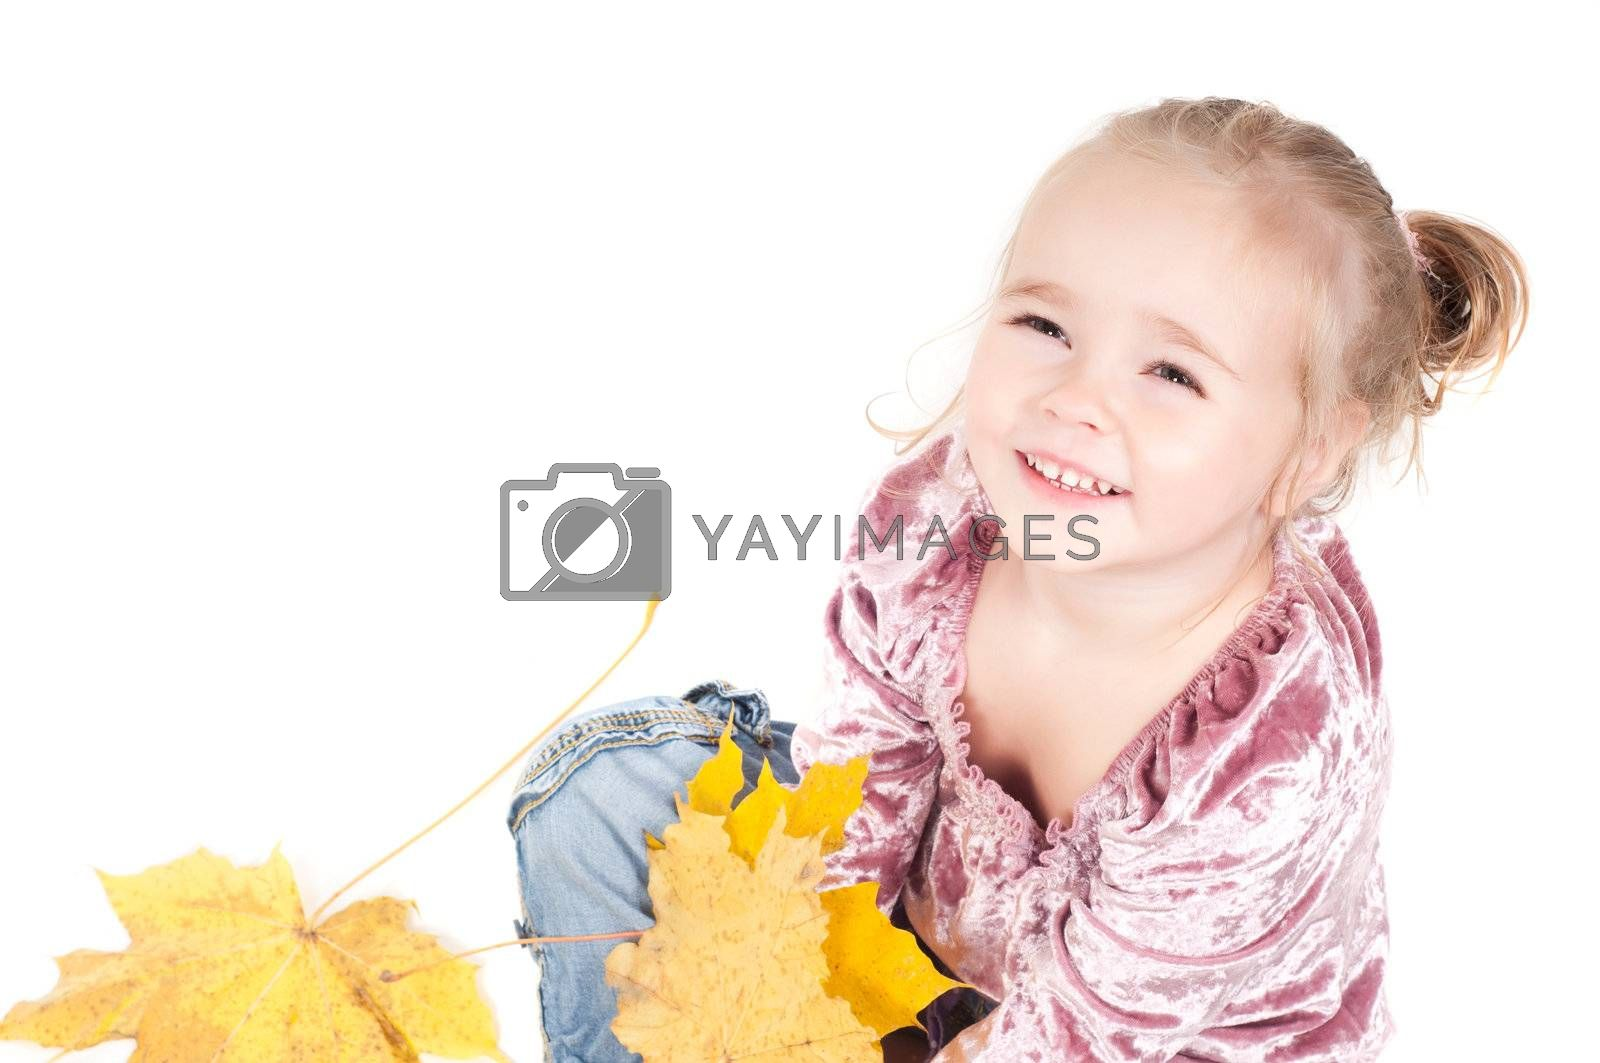 Royalty free image of Toddler with maple leaves by anytka